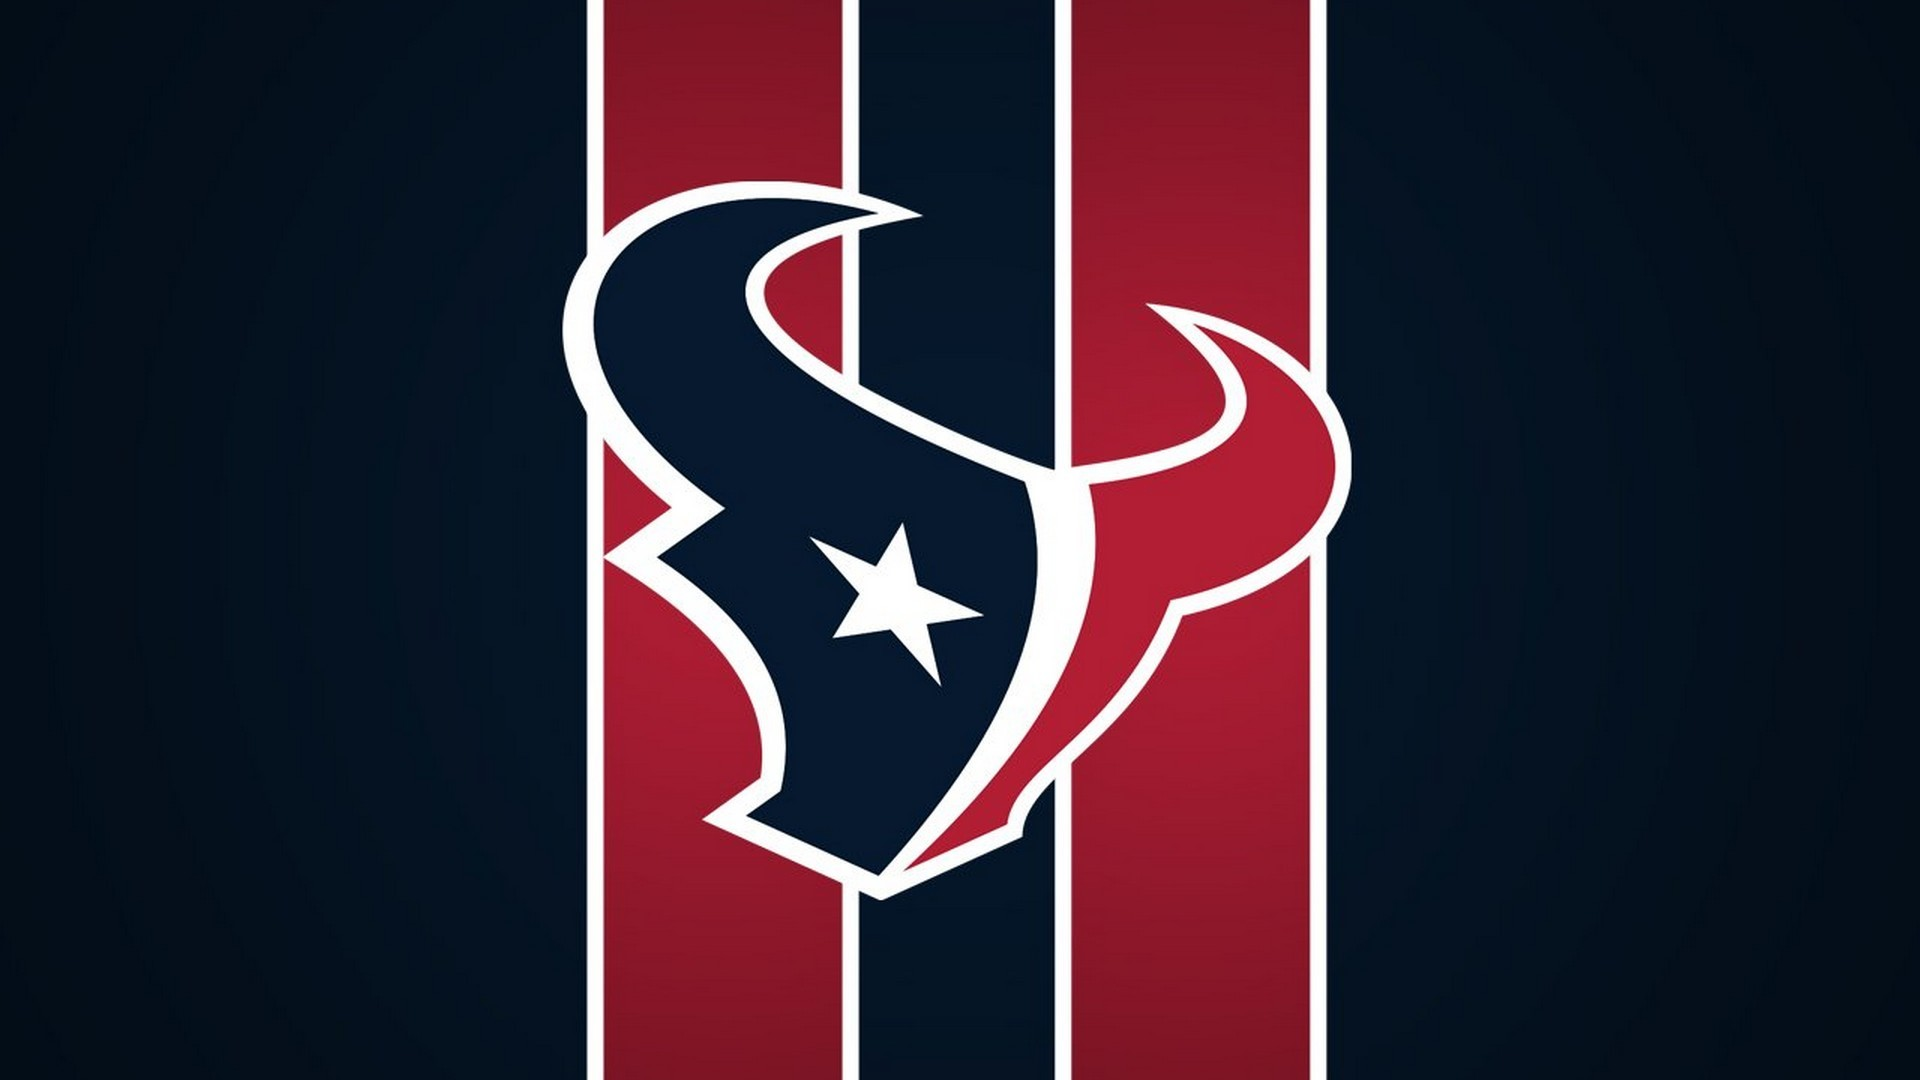 1920x1080 Backgrounds Houston Texans NFL HD with resolution  pixel. You can  make this wallpaper for